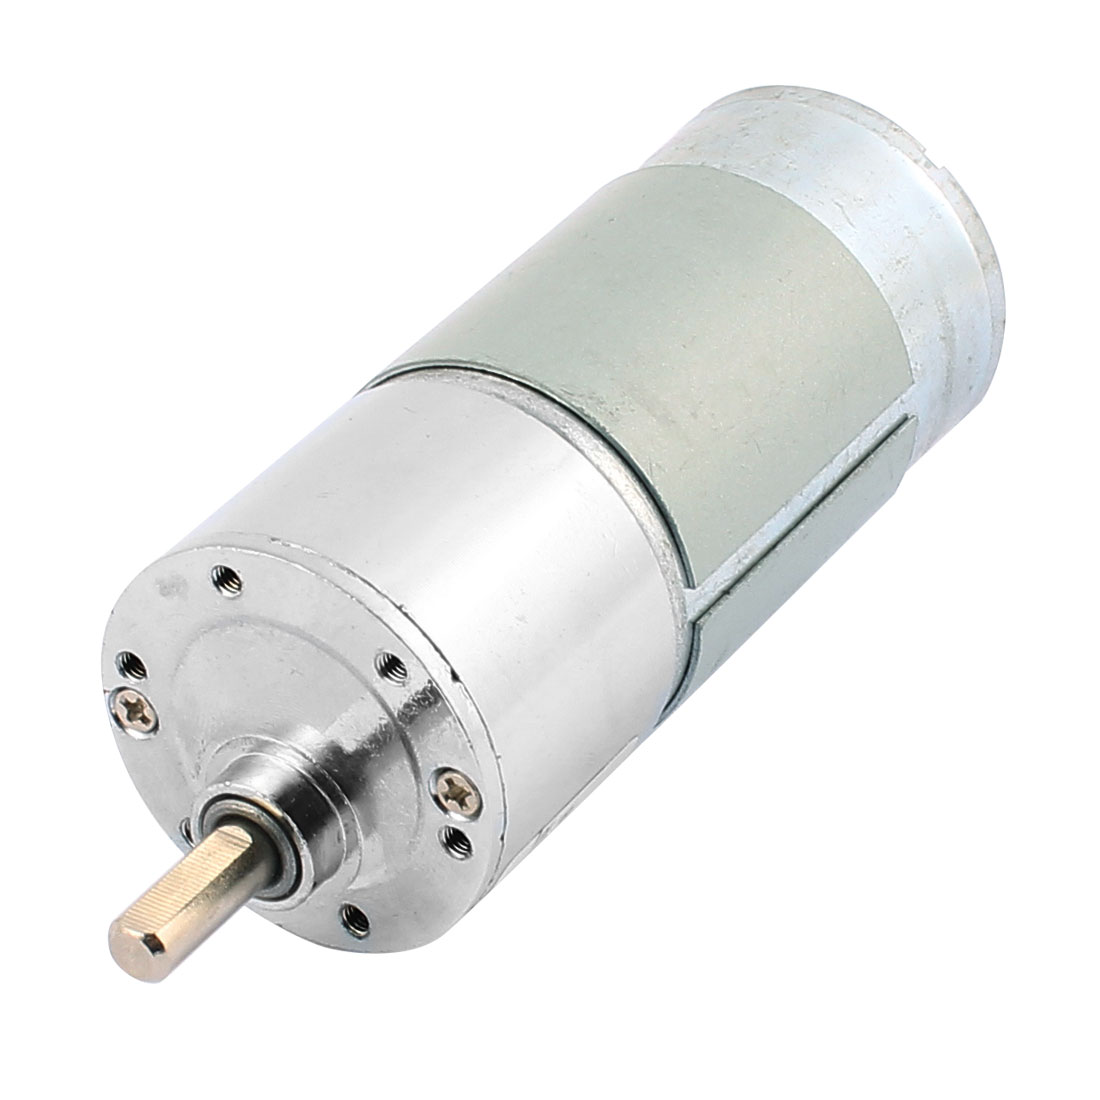 DC 24V 150R/Min Electrical Solder Cylindrical High Torque DC Geared Motor